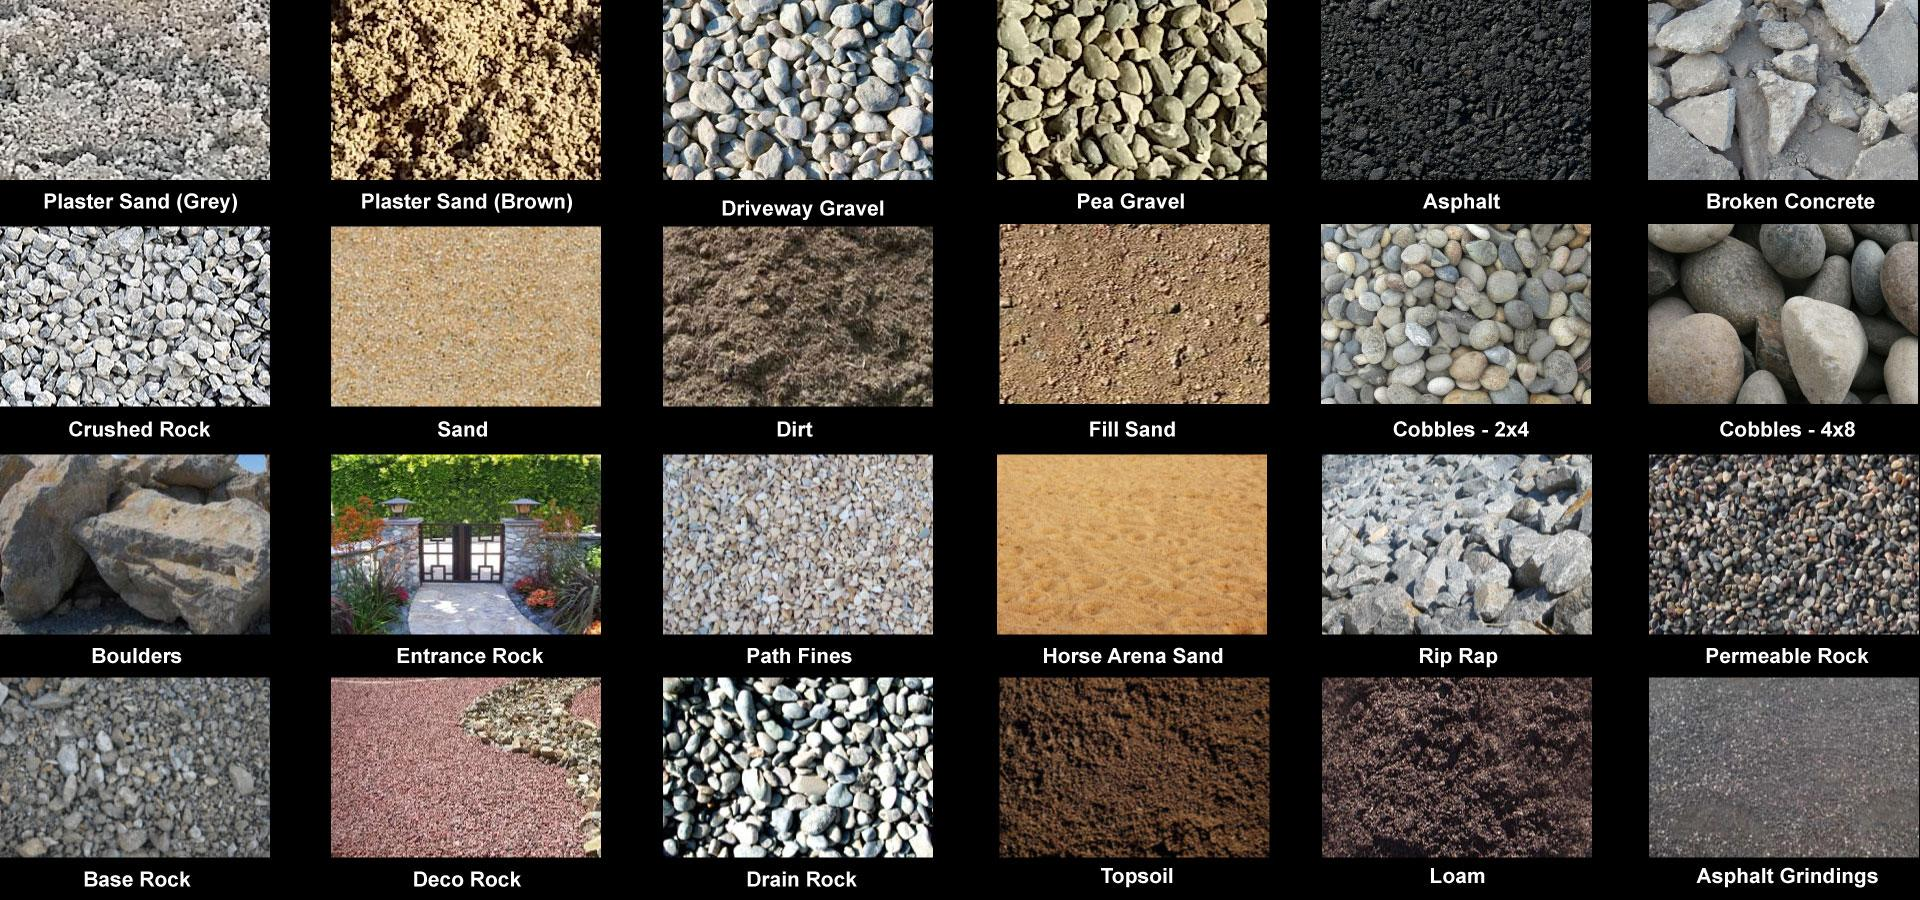 Plaster Sand, Ddriveway Gravel, Pea Gravel, Asphalt, Broken Concrete, Crushed Rock, Sand, Dirt, Fill Sand, Cobbles 2x4, Cobbles 4x8, Boulders, Entrance Rock, Path Finees, Horse Arena Sand, Rip Rap all sizes, Permeable Rock, Base Rock, Deco Rock, Drain Rock, Topsoil, Loam, Asphalt Grindings